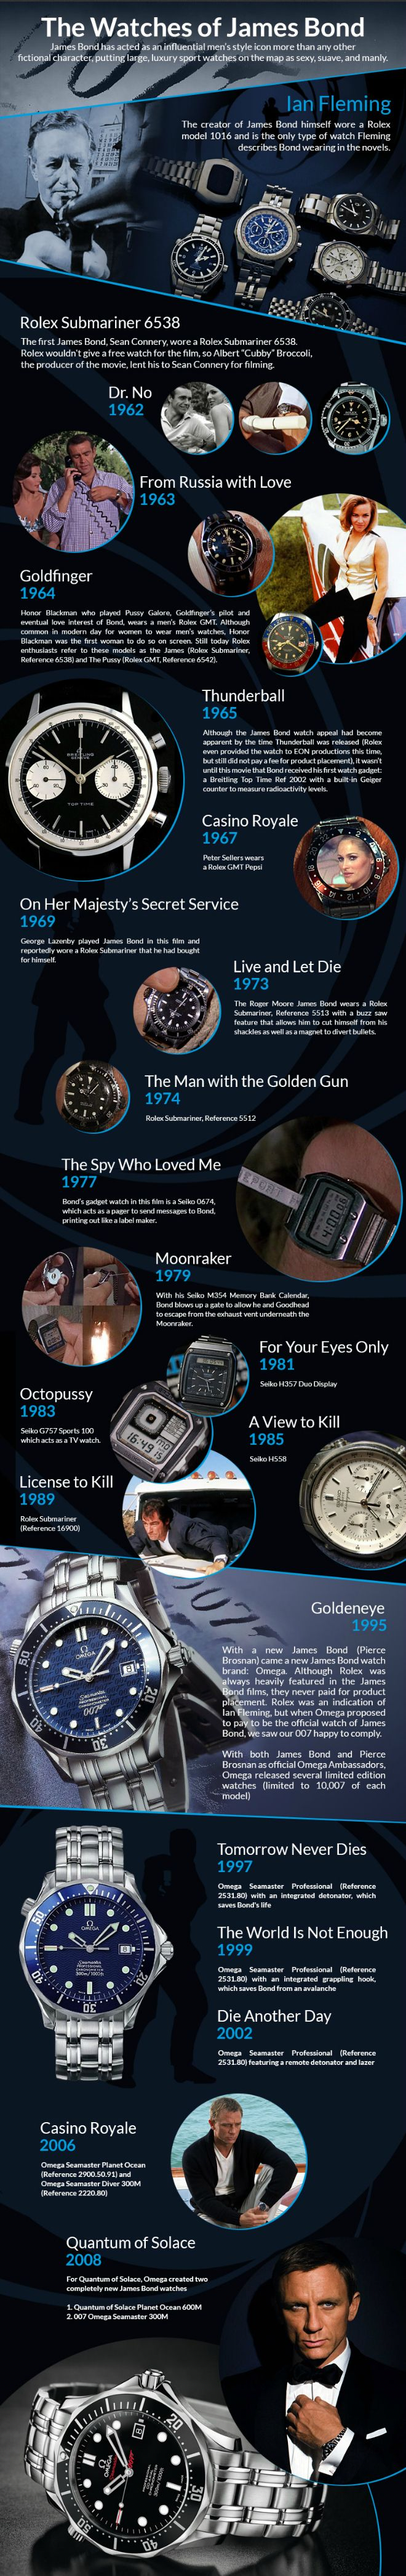 An Awesome Infographic Showcasing The Watches Of James Bond